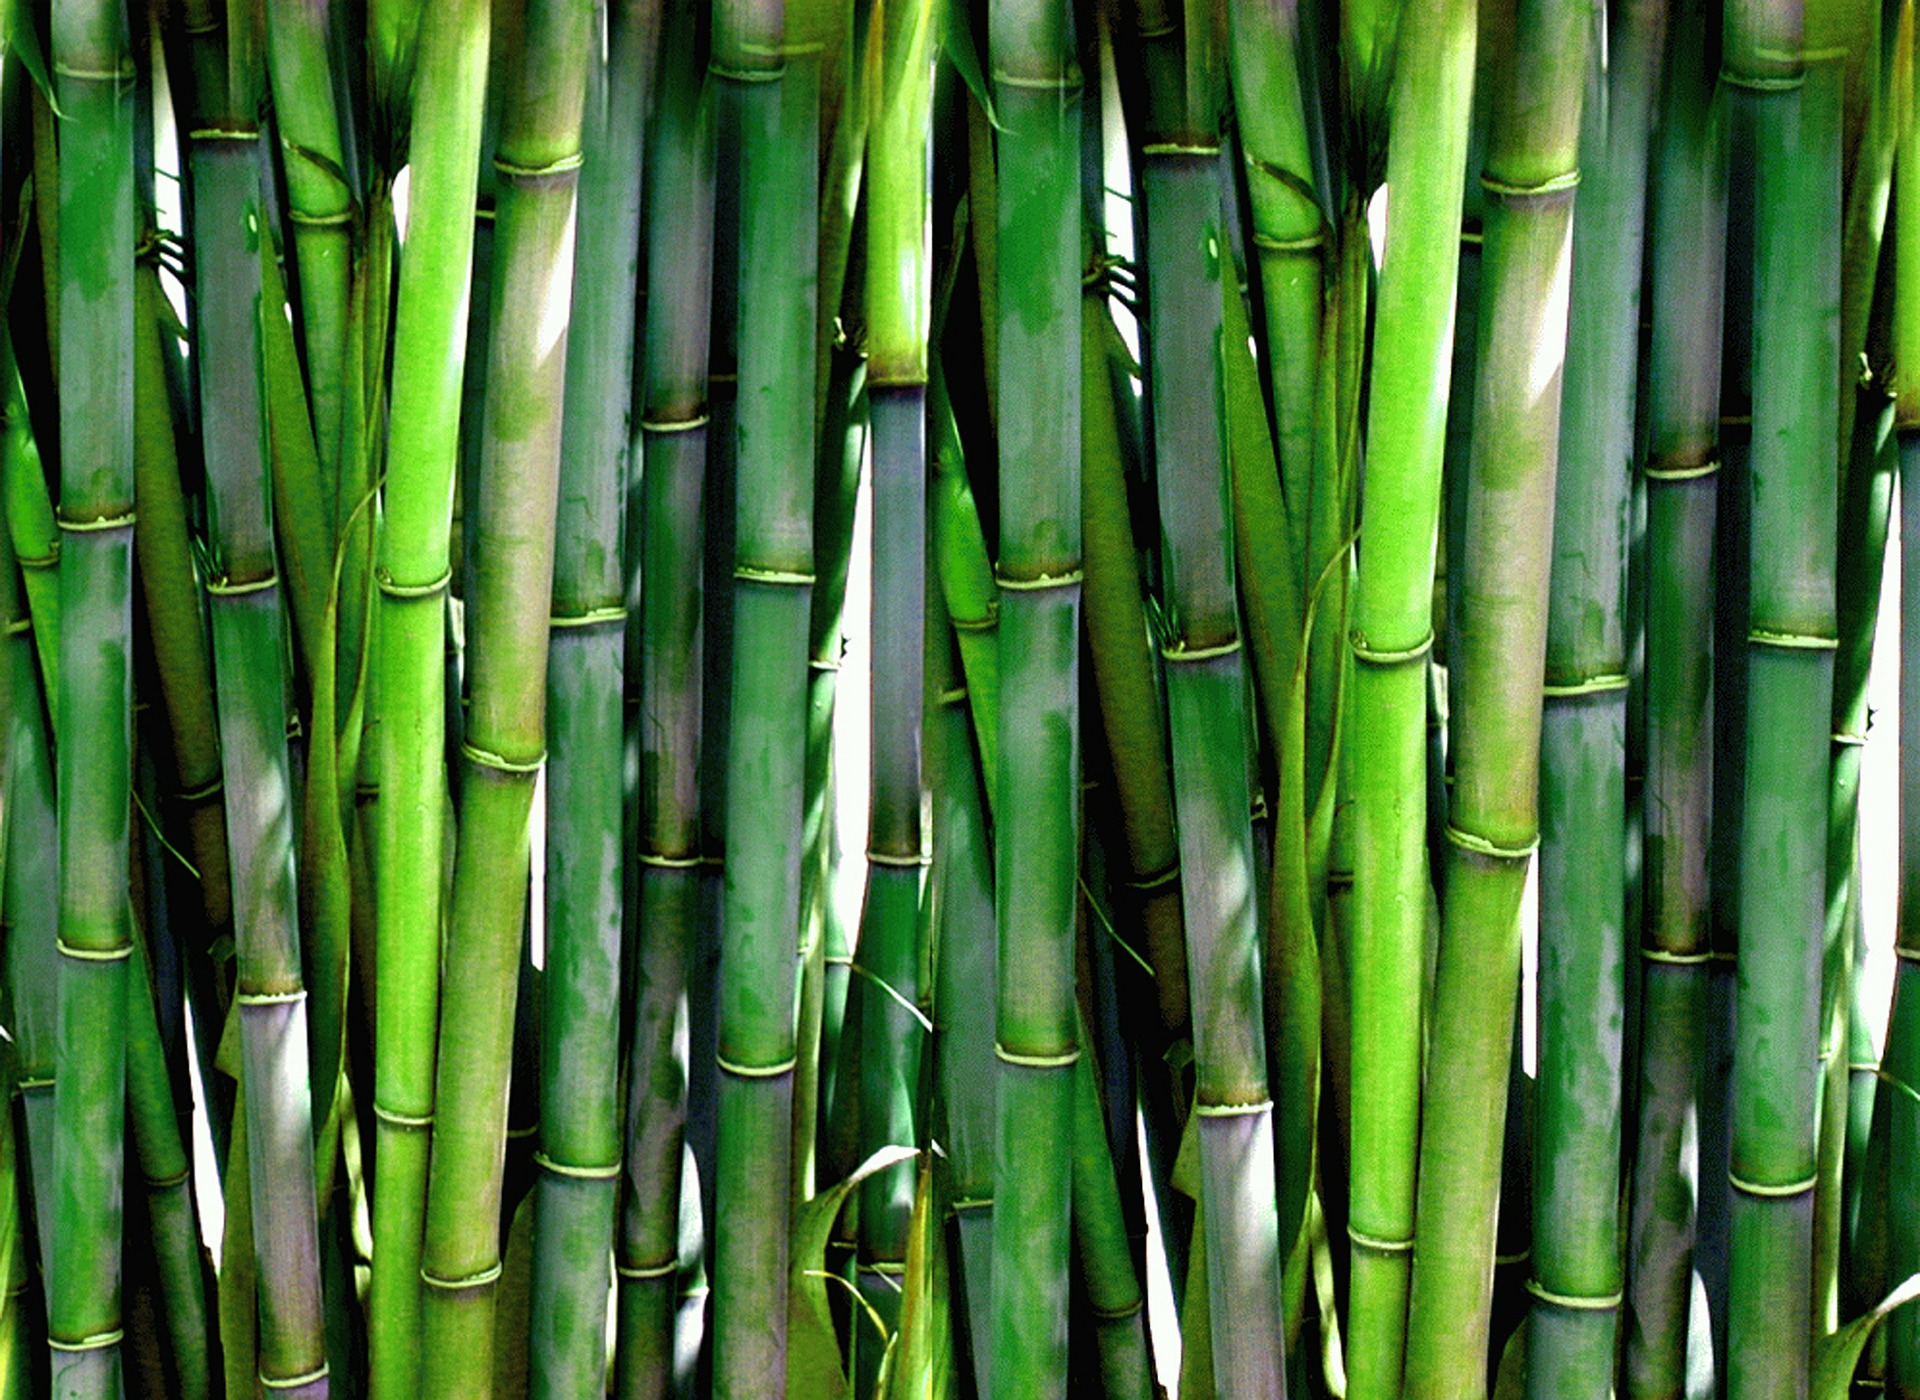 Bamboo Kauai|Bamboo Straw|Hawaii| Reusable| Eco friendly|Bamboo|